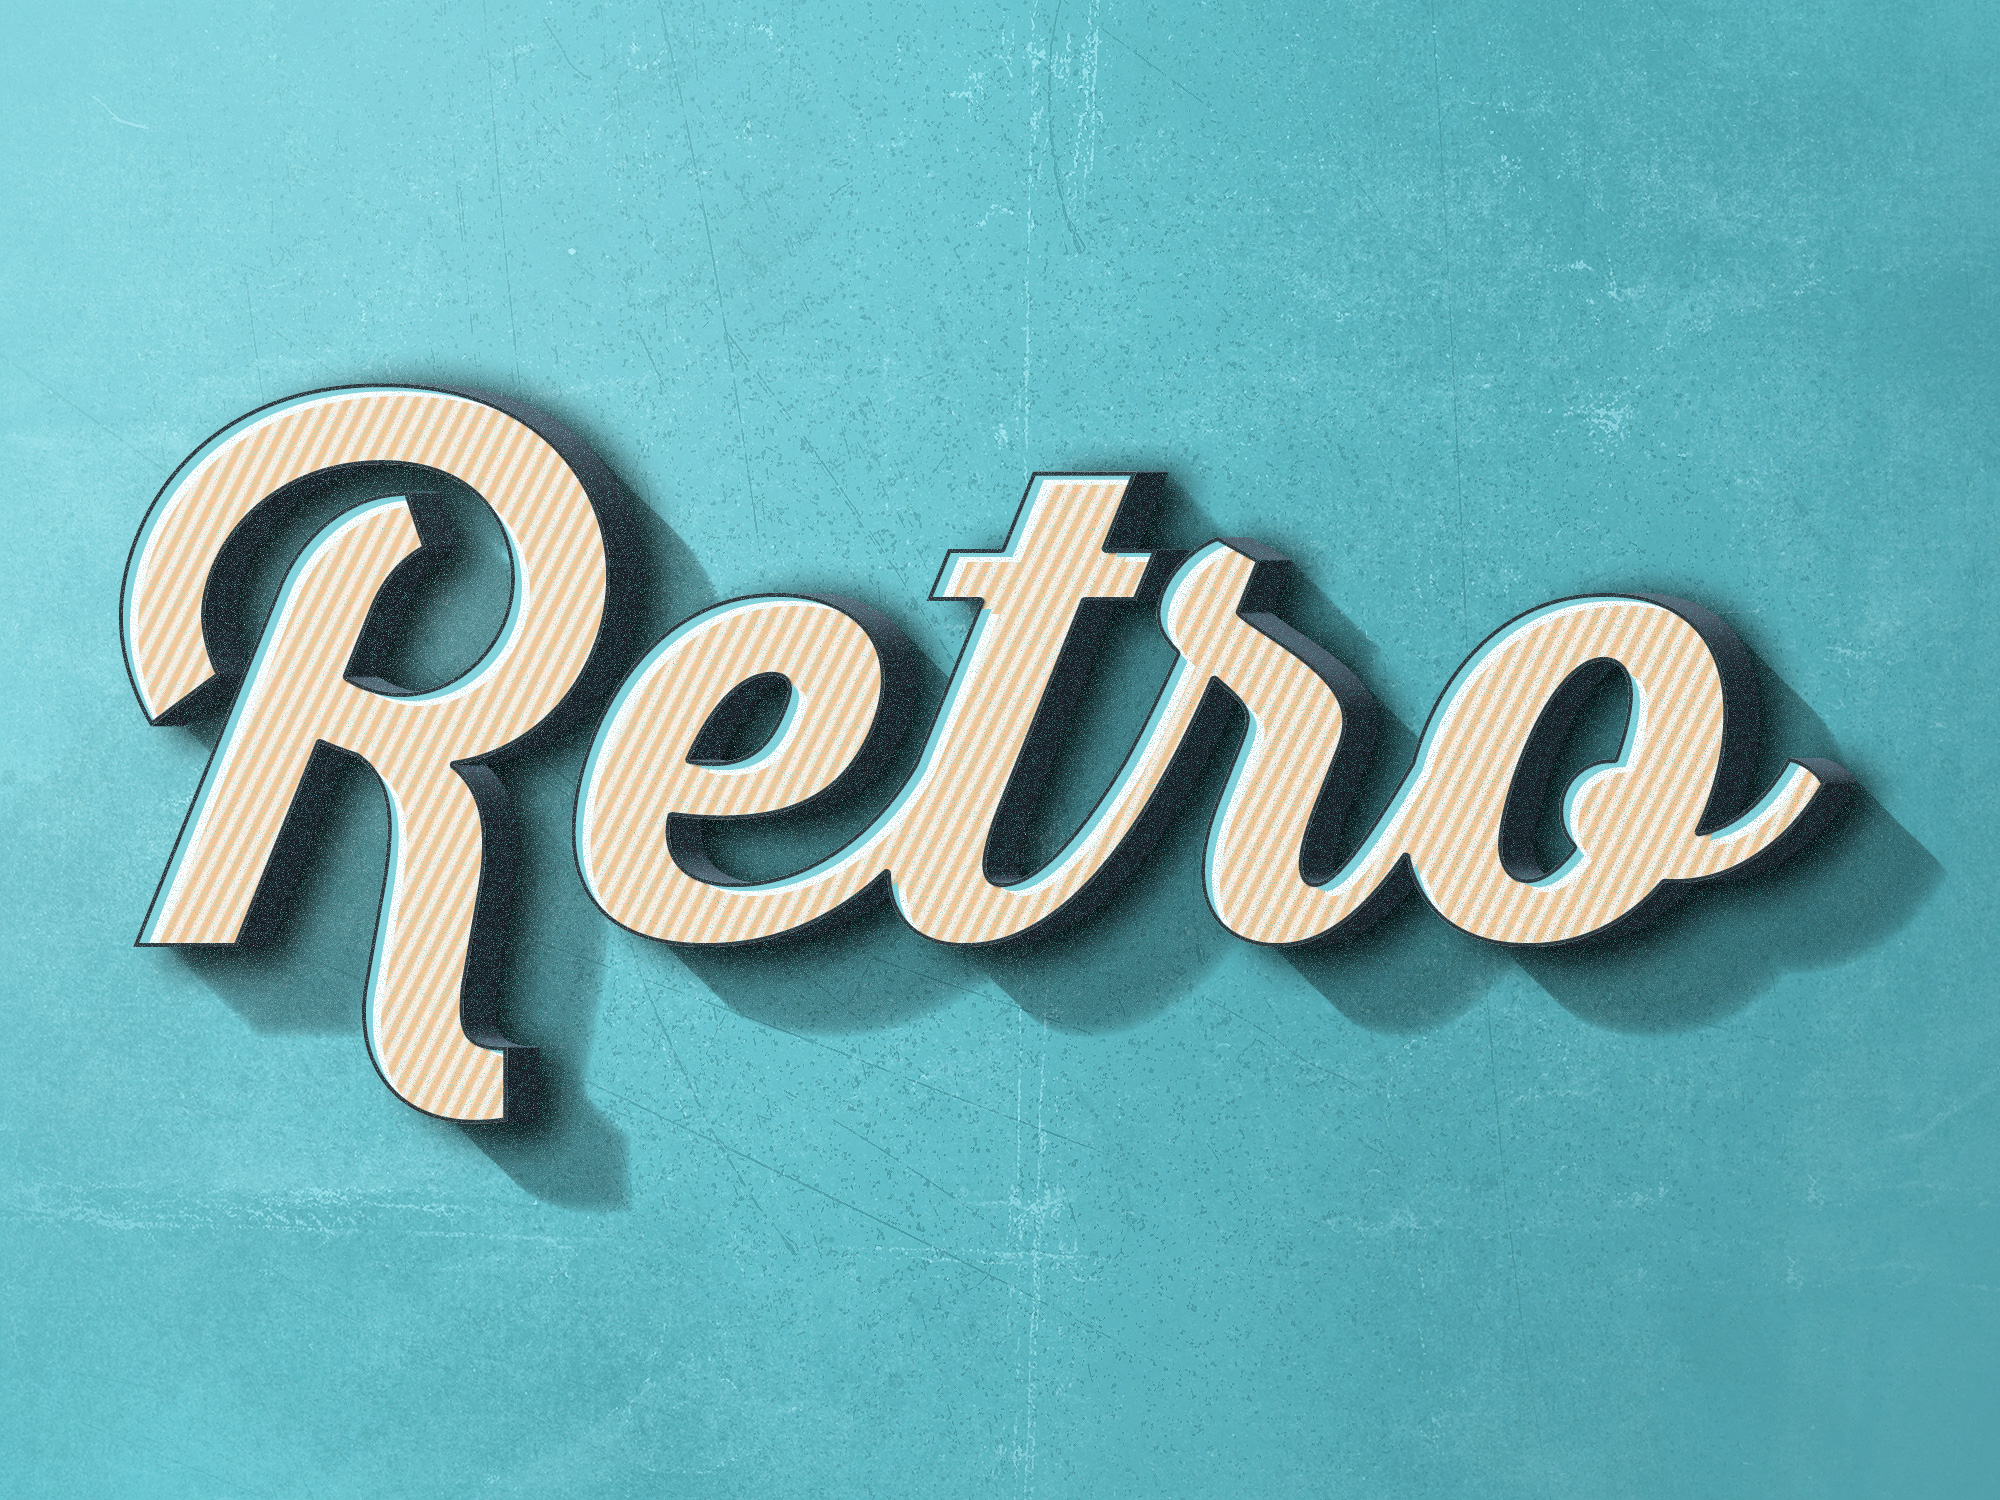 Retro Text Effect #2 | GraphicBurger